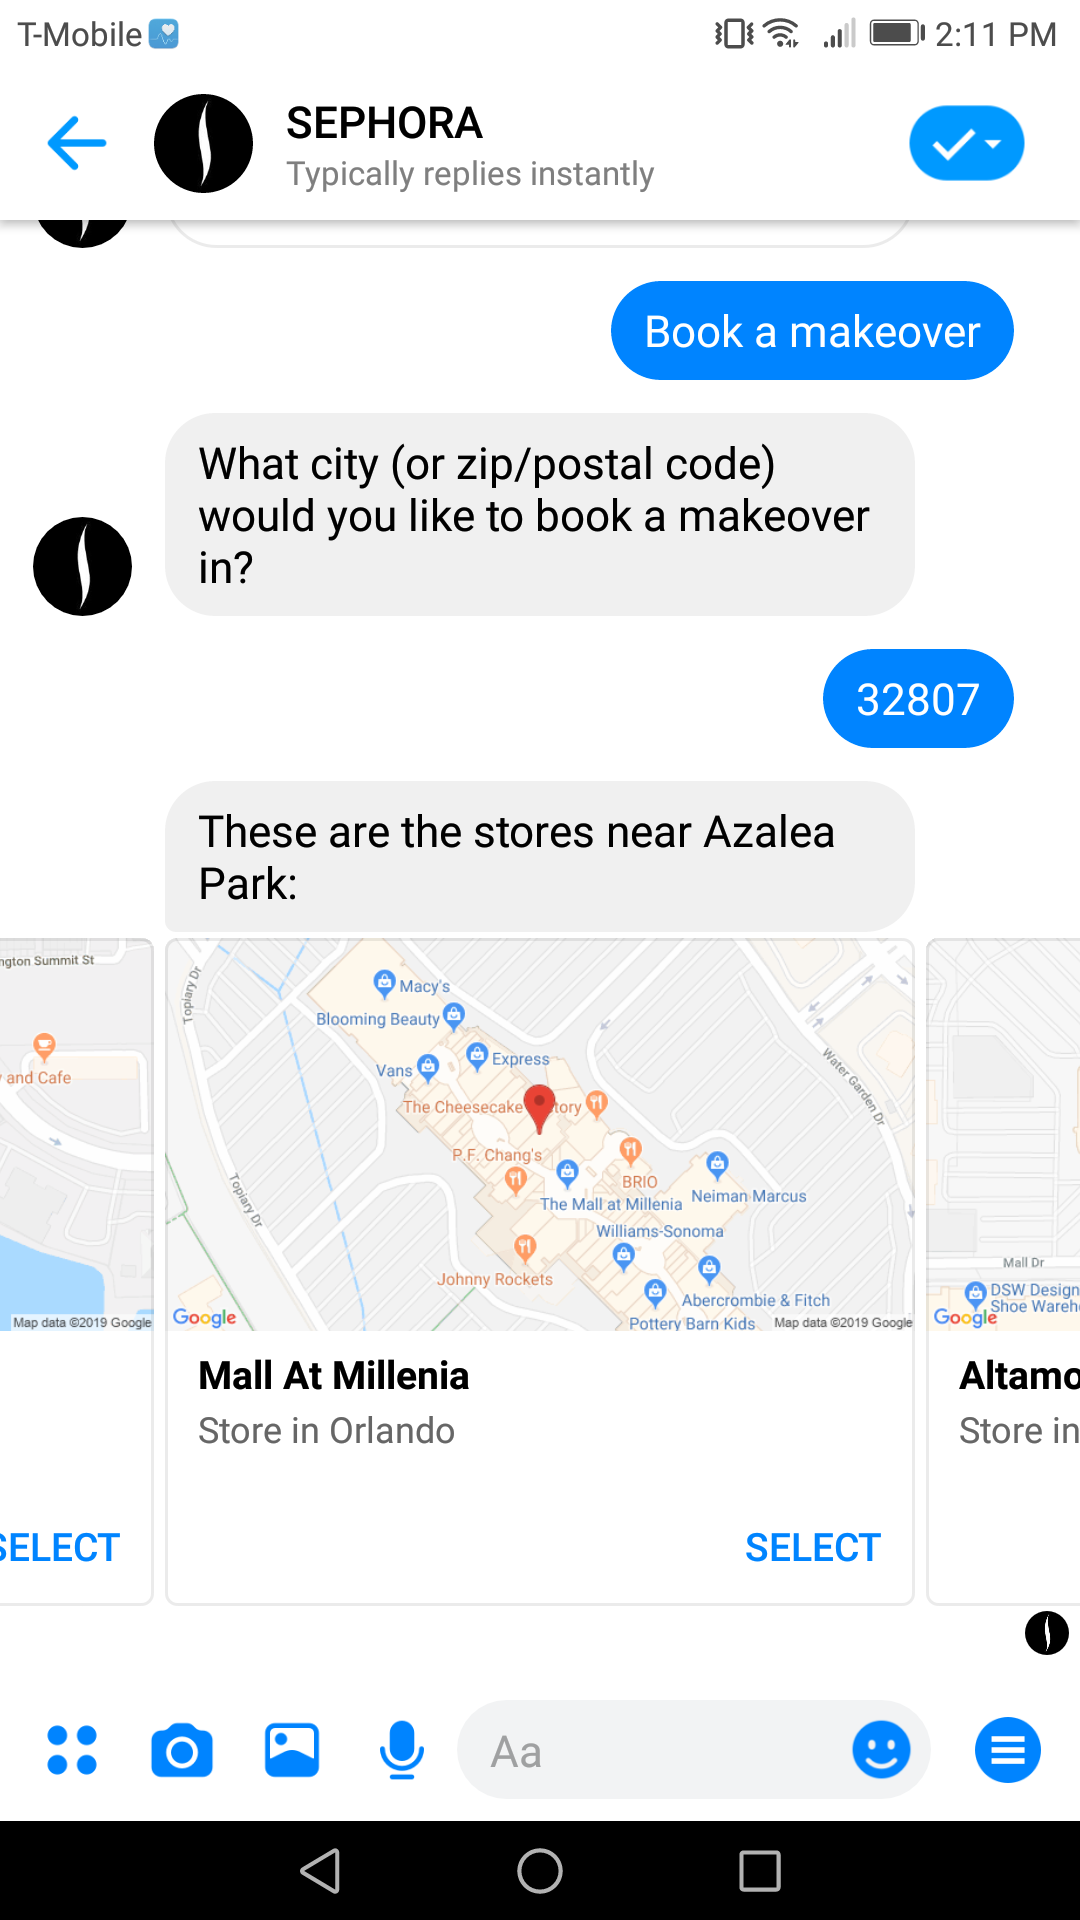 Sephora's bot allows users to guide appointments directly from Facebook